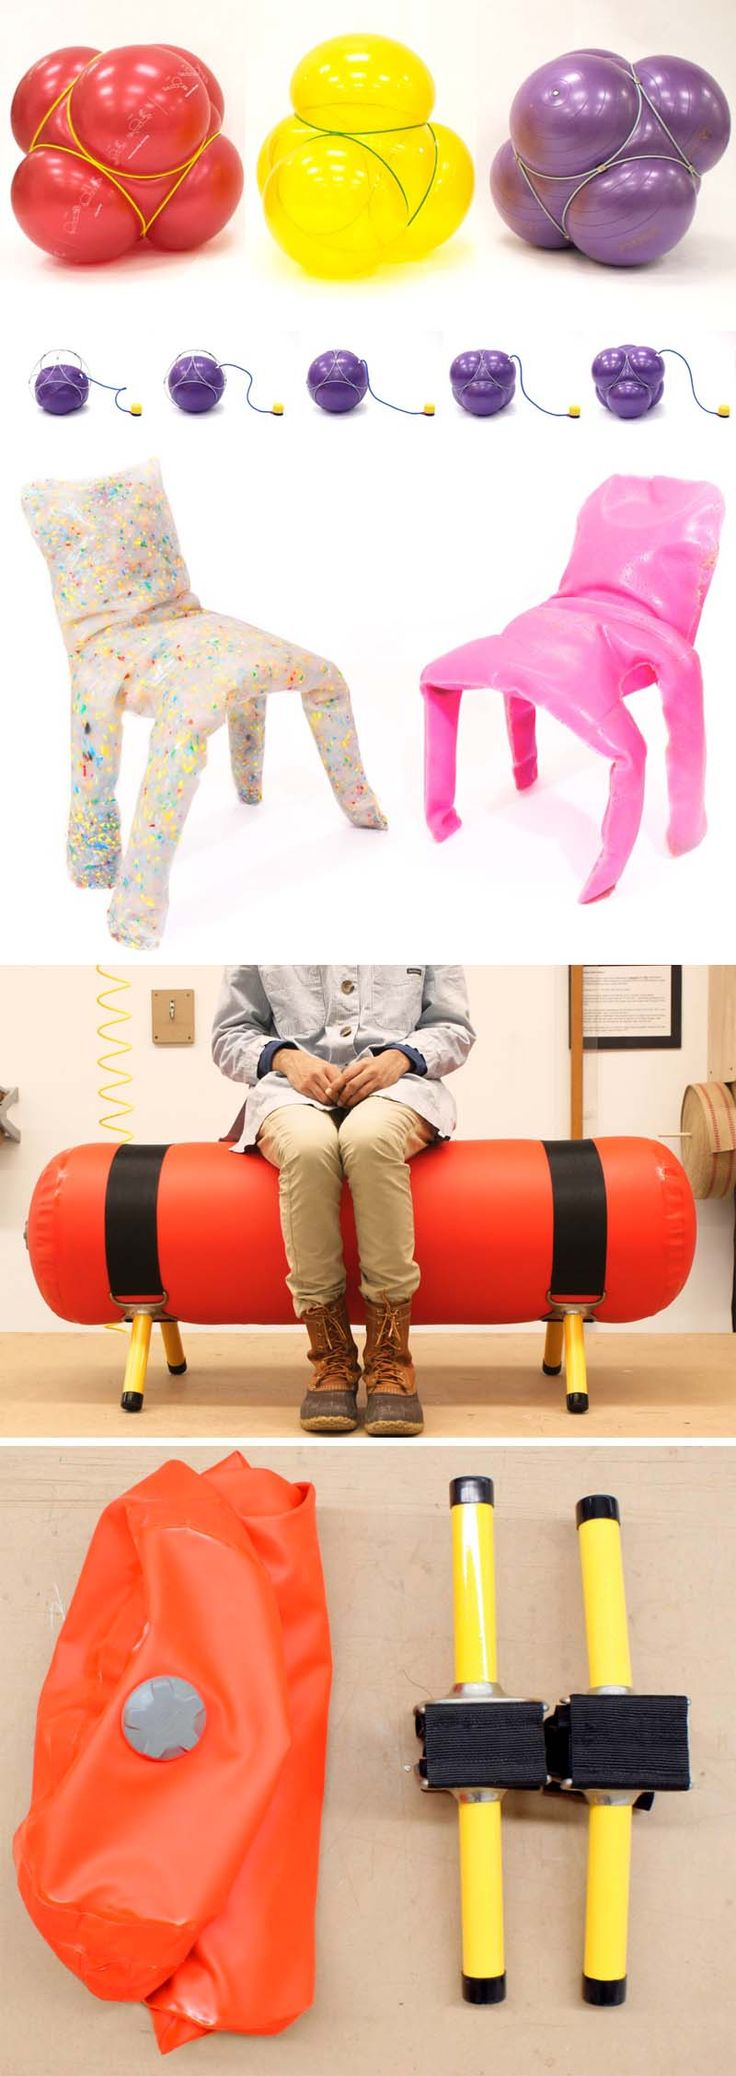 Inflatable furniture 90s - Fun Furniture Design By Jamie Wolfond Industrial Design Inflatable And Foam Stools Chairs